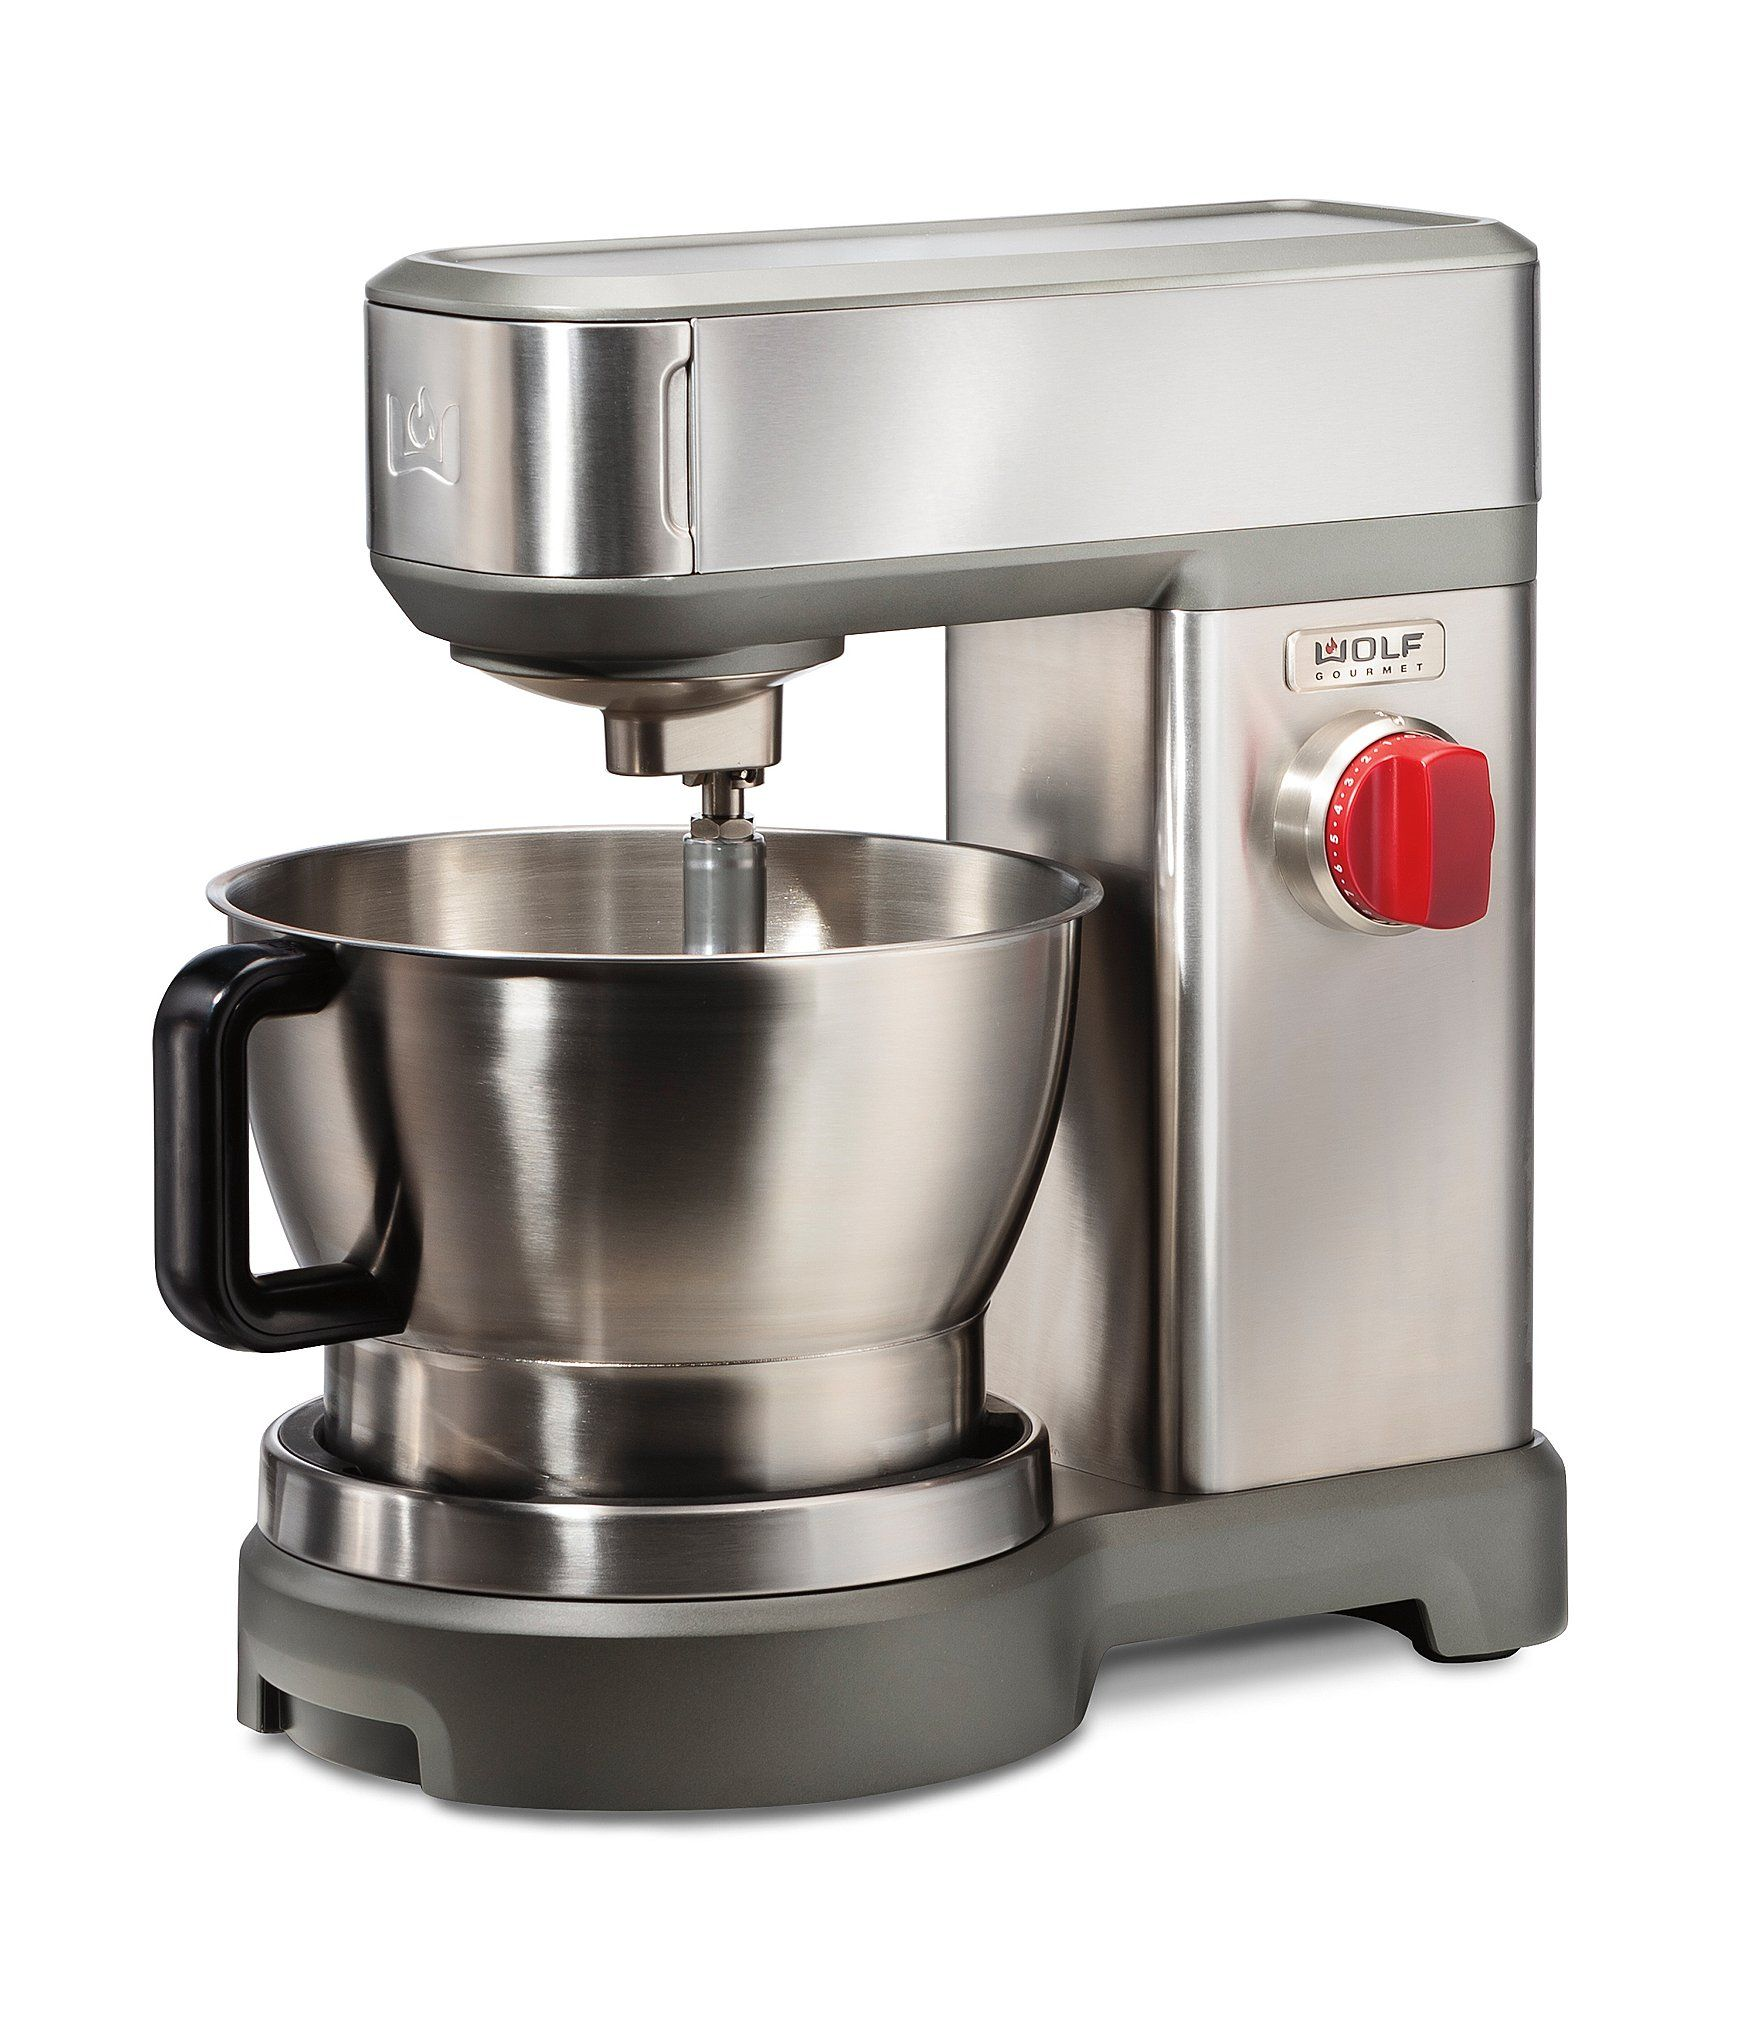 Wolf Gourmet 7 Quart Stand Mixer N A N A Brushed Stainless